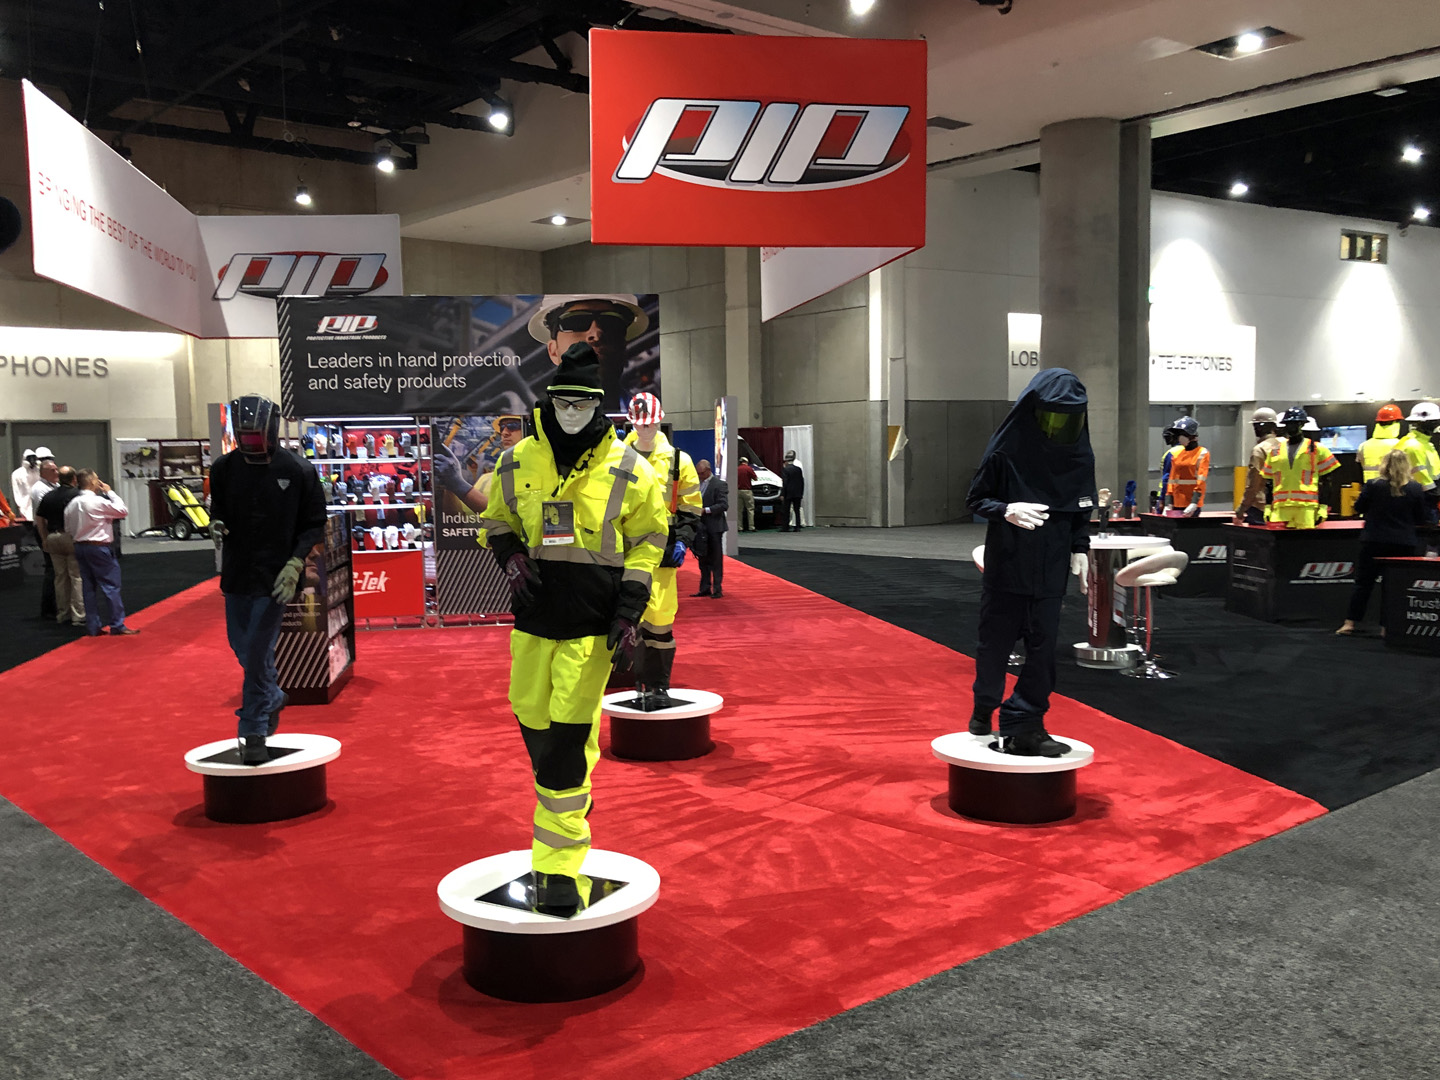 mannequins in trade show exhibit booth for PIP